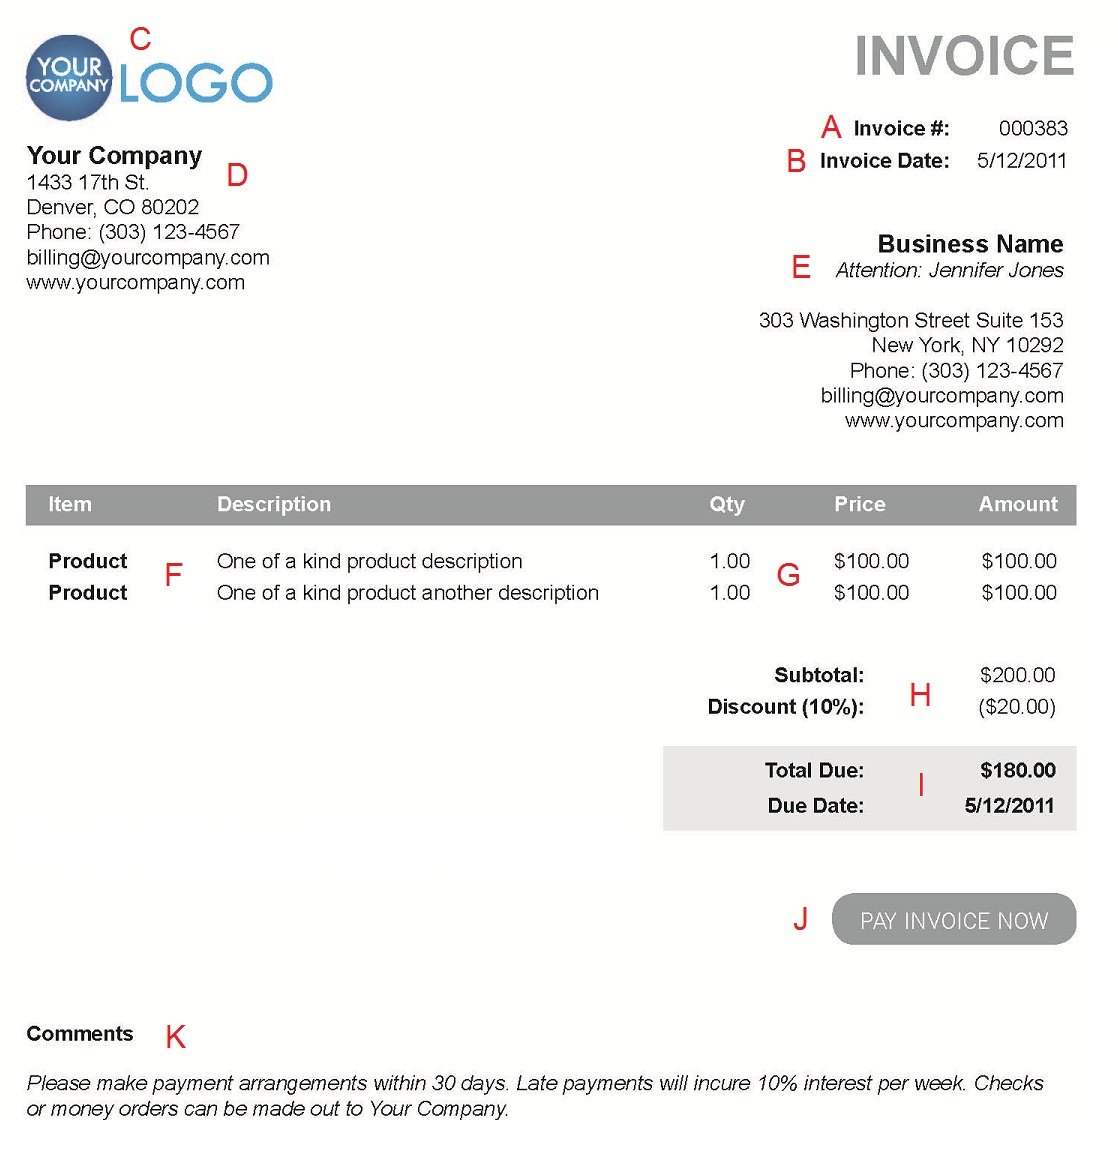 Coolmathgamesus  Scenic The  Different Sections Of An Electronic Payment Invoice With Excellent A  With Easy On The Eye Invoice Template Design Also Freshbook Invoice In Addition Usps Invoice Number And Invoice Document Template As Well As Create Your Own Invoices Additionally Invoicing And Billing Software From Paysimplecom With Coolmathgamesus  Excellent The  Different Sections Of An Electronic Payment Invoice With Easy On The Eye A  And Scenic Invoice Template Design Also Freshbook Invoice In Addition Usps Invoice Number From Paysimplecom